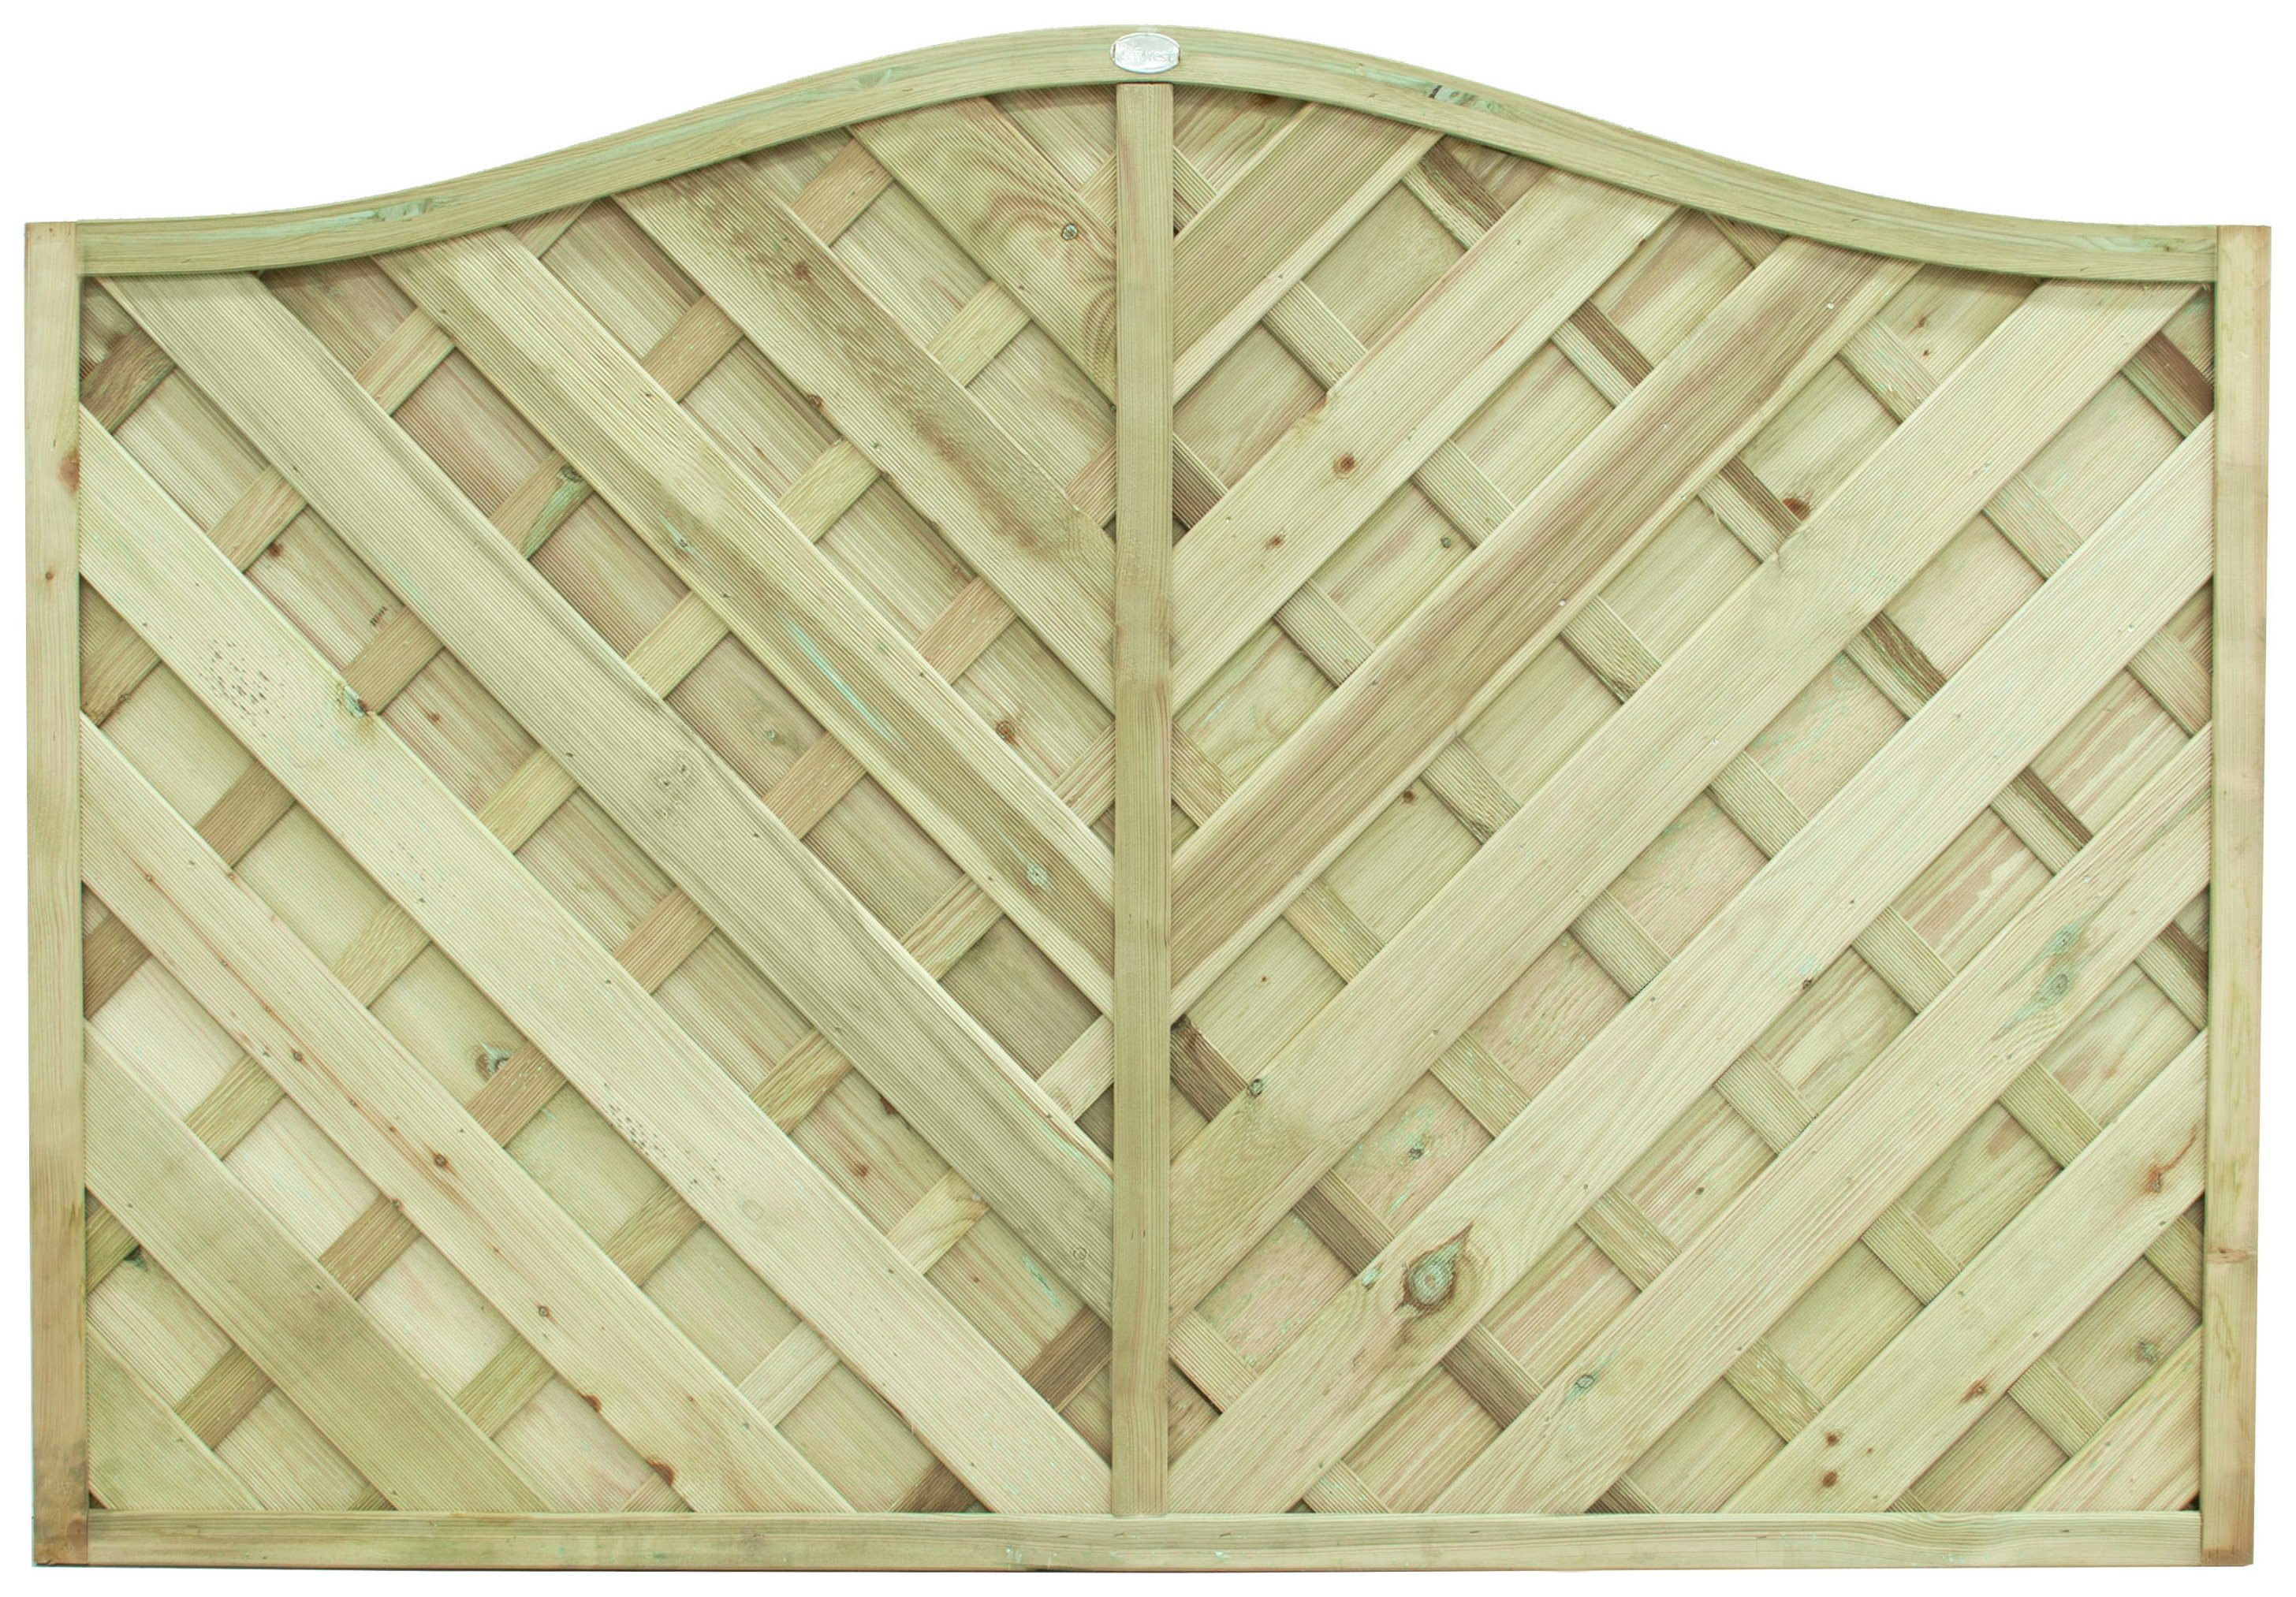 Forest 1.2m Strasburg Fence Panels - Pack of 5. lowest price